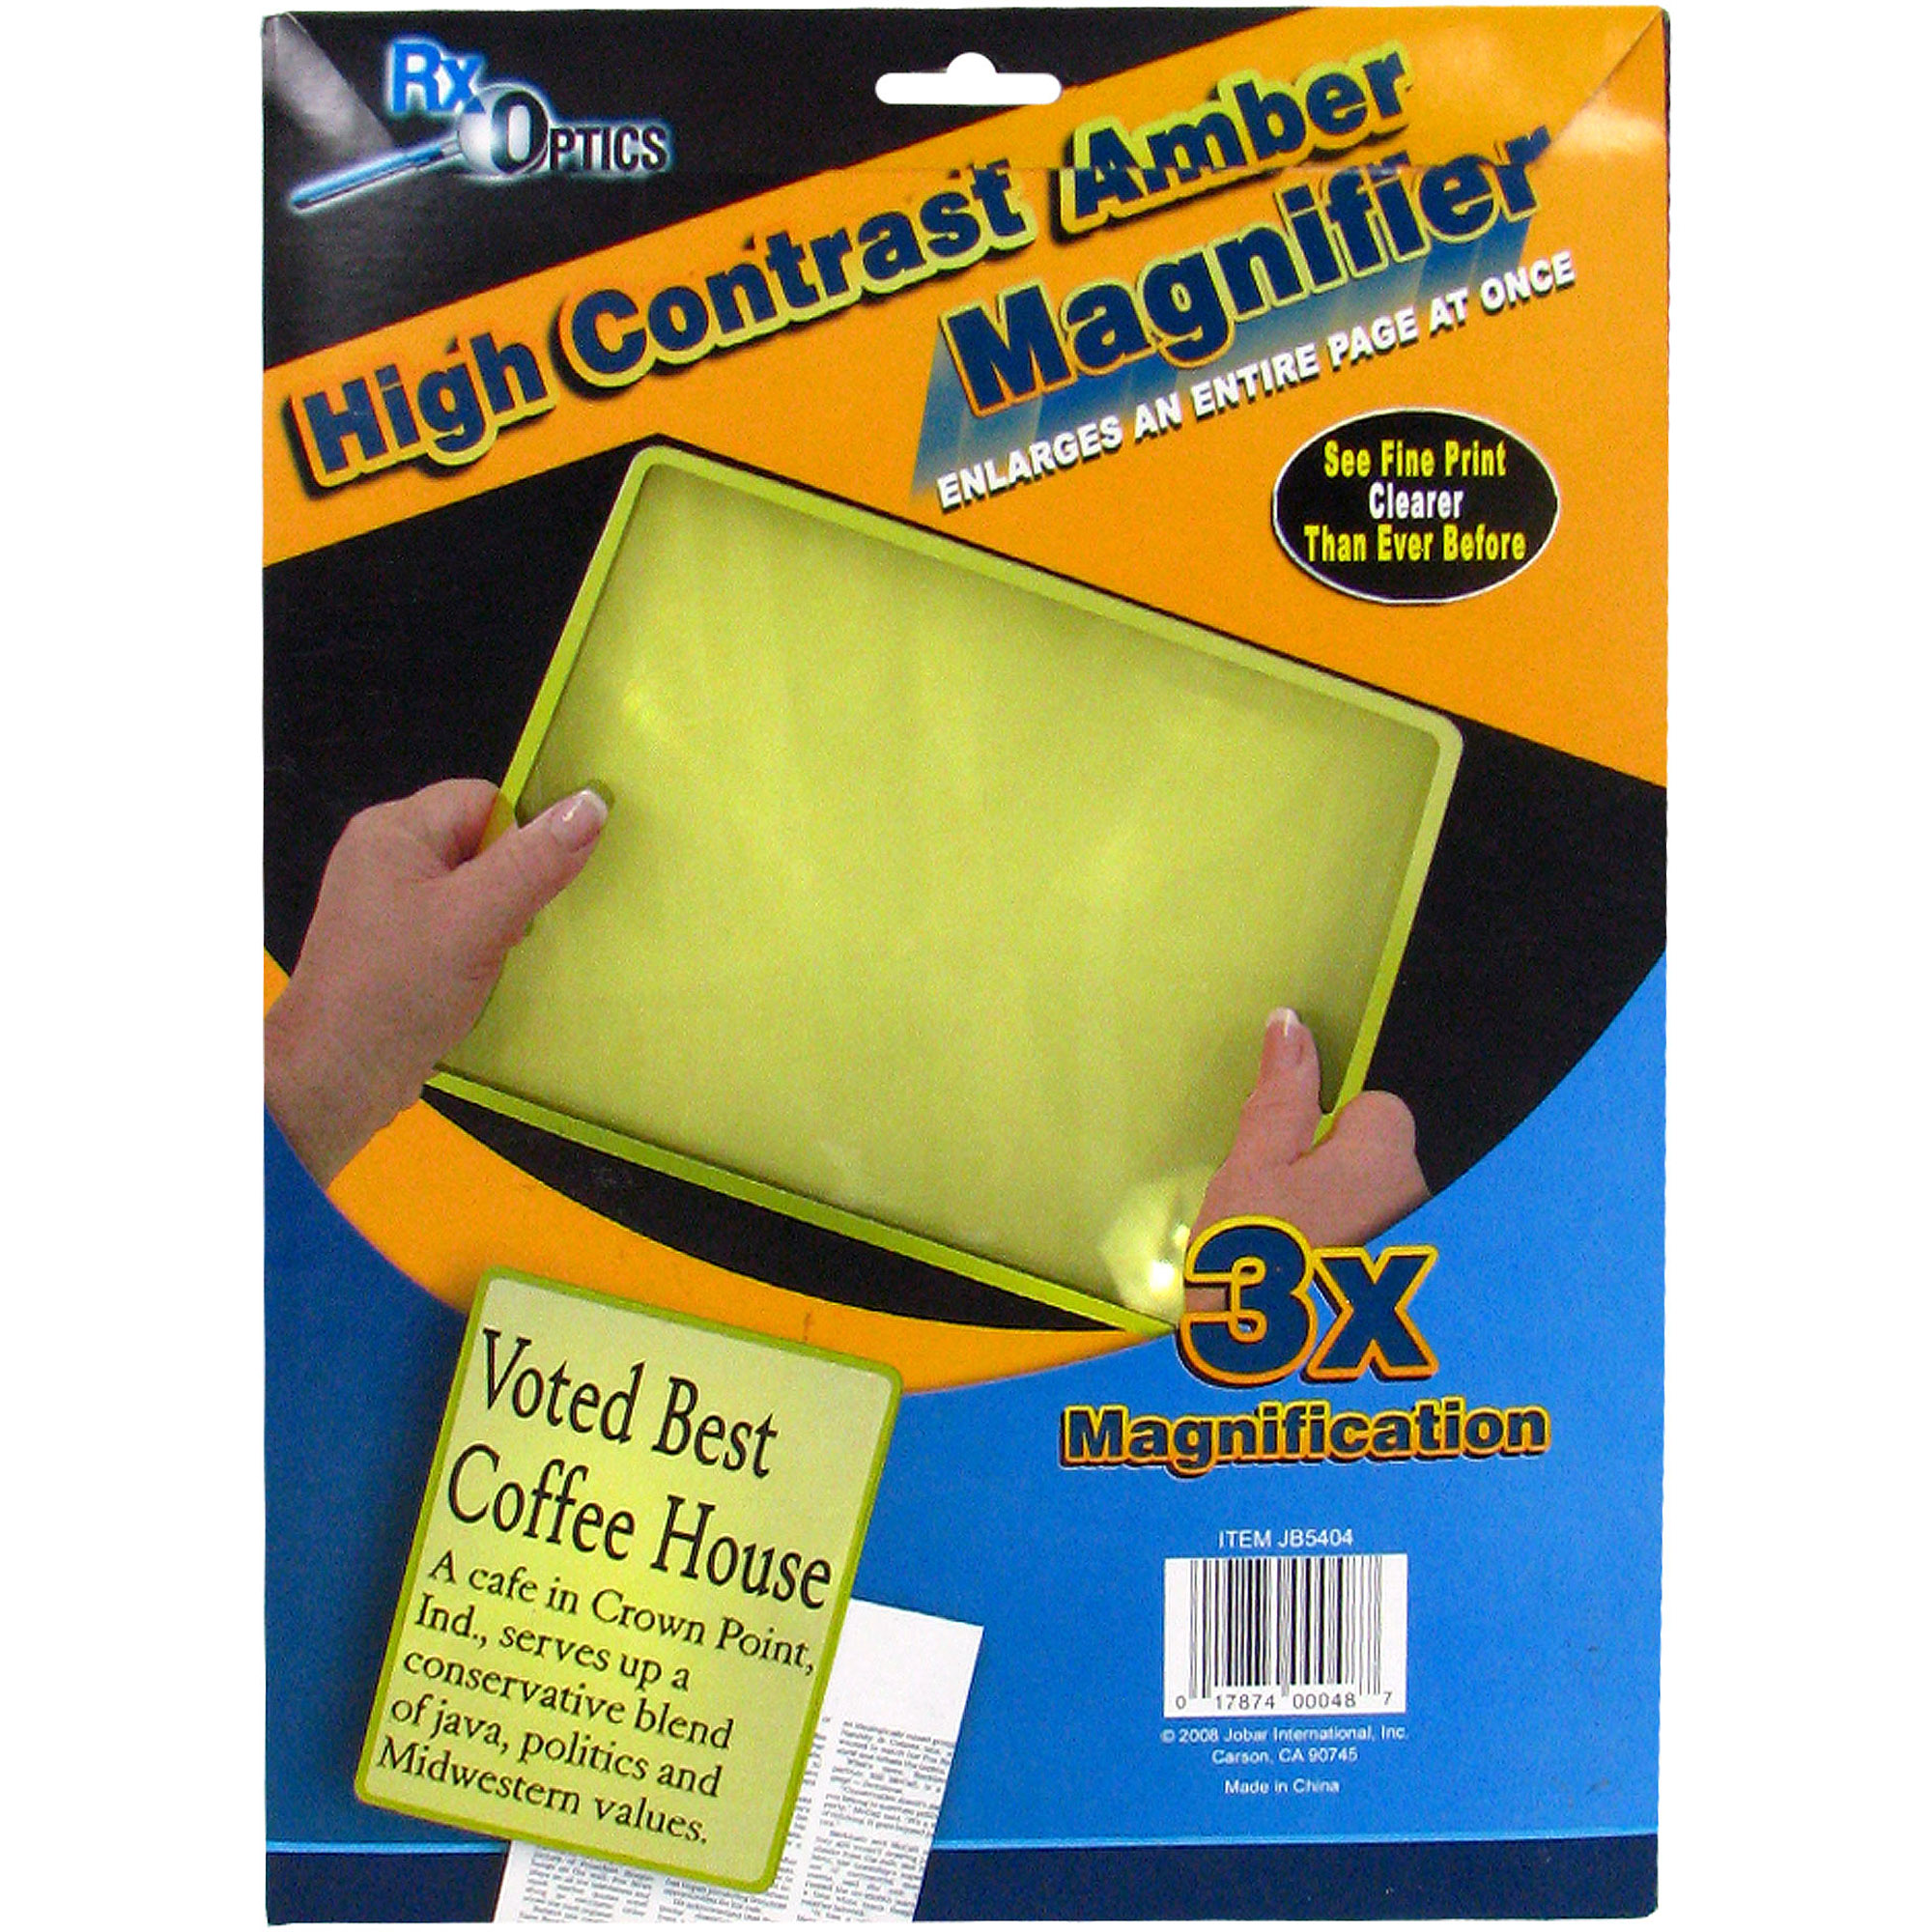 Trademark High Contrast Amber Magnifier, 3X Magnification